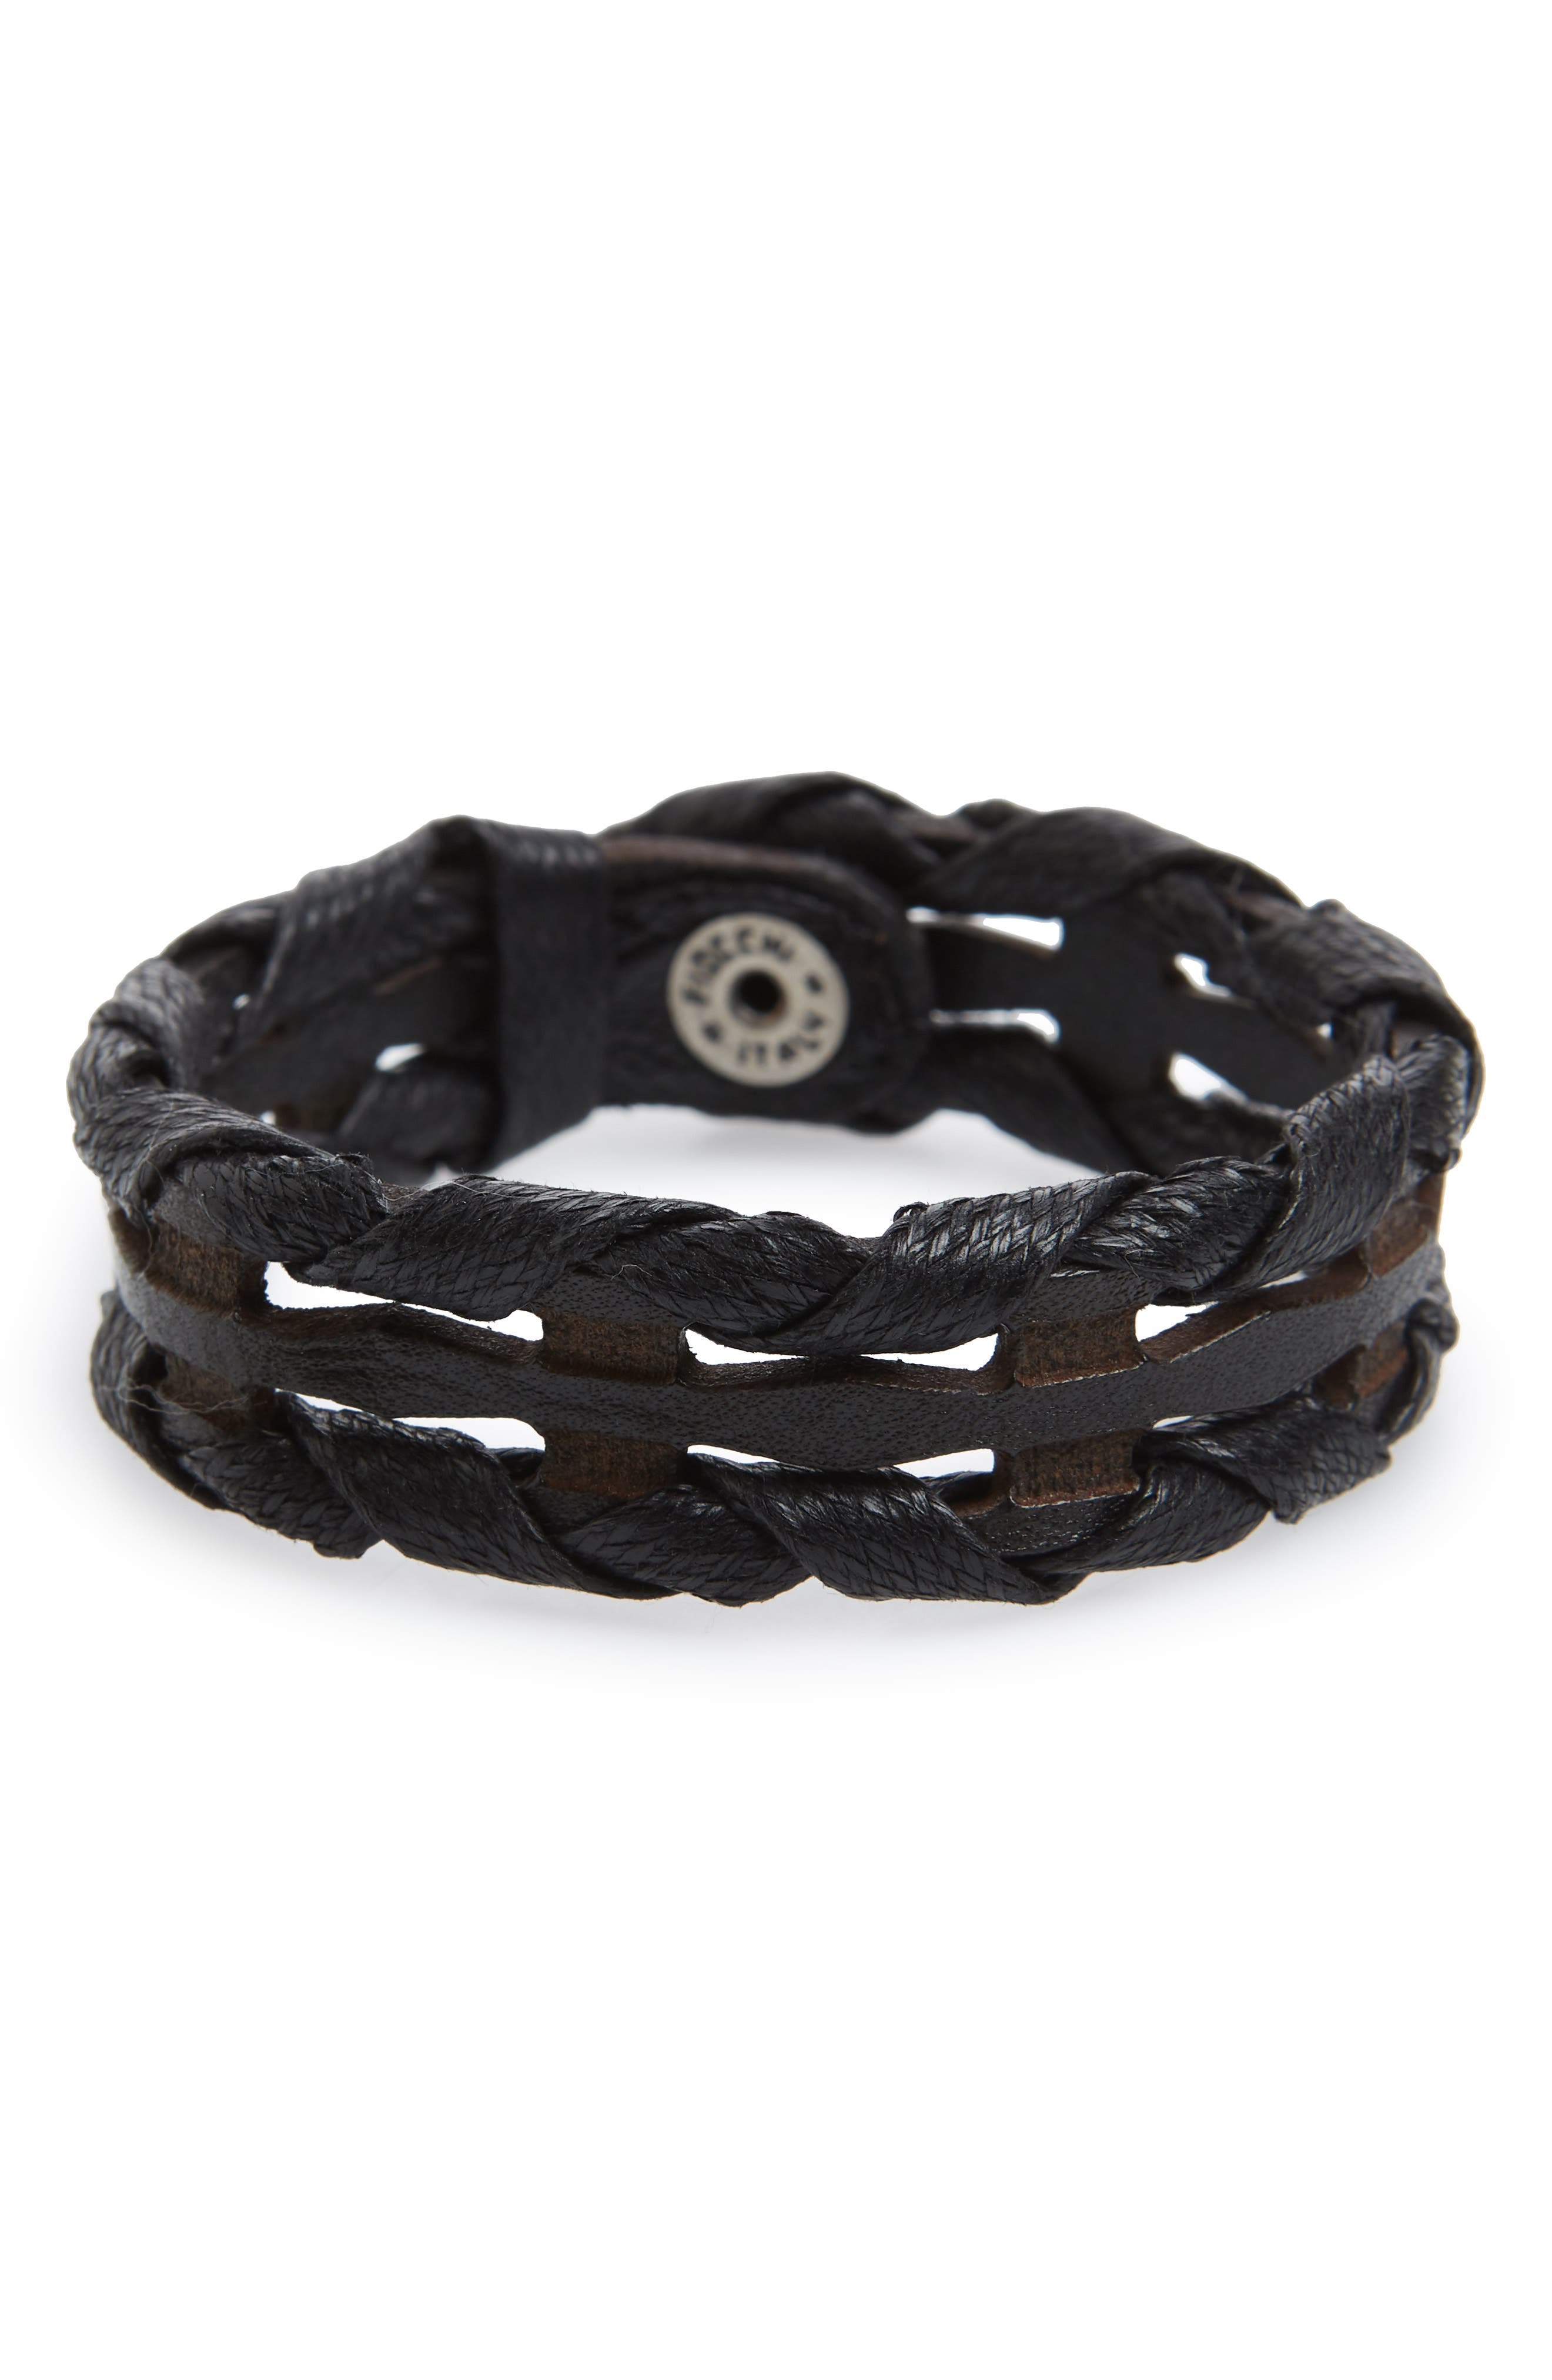 Alternate Image 1 Selected - Orciani Wax Woven Leather Bracelet